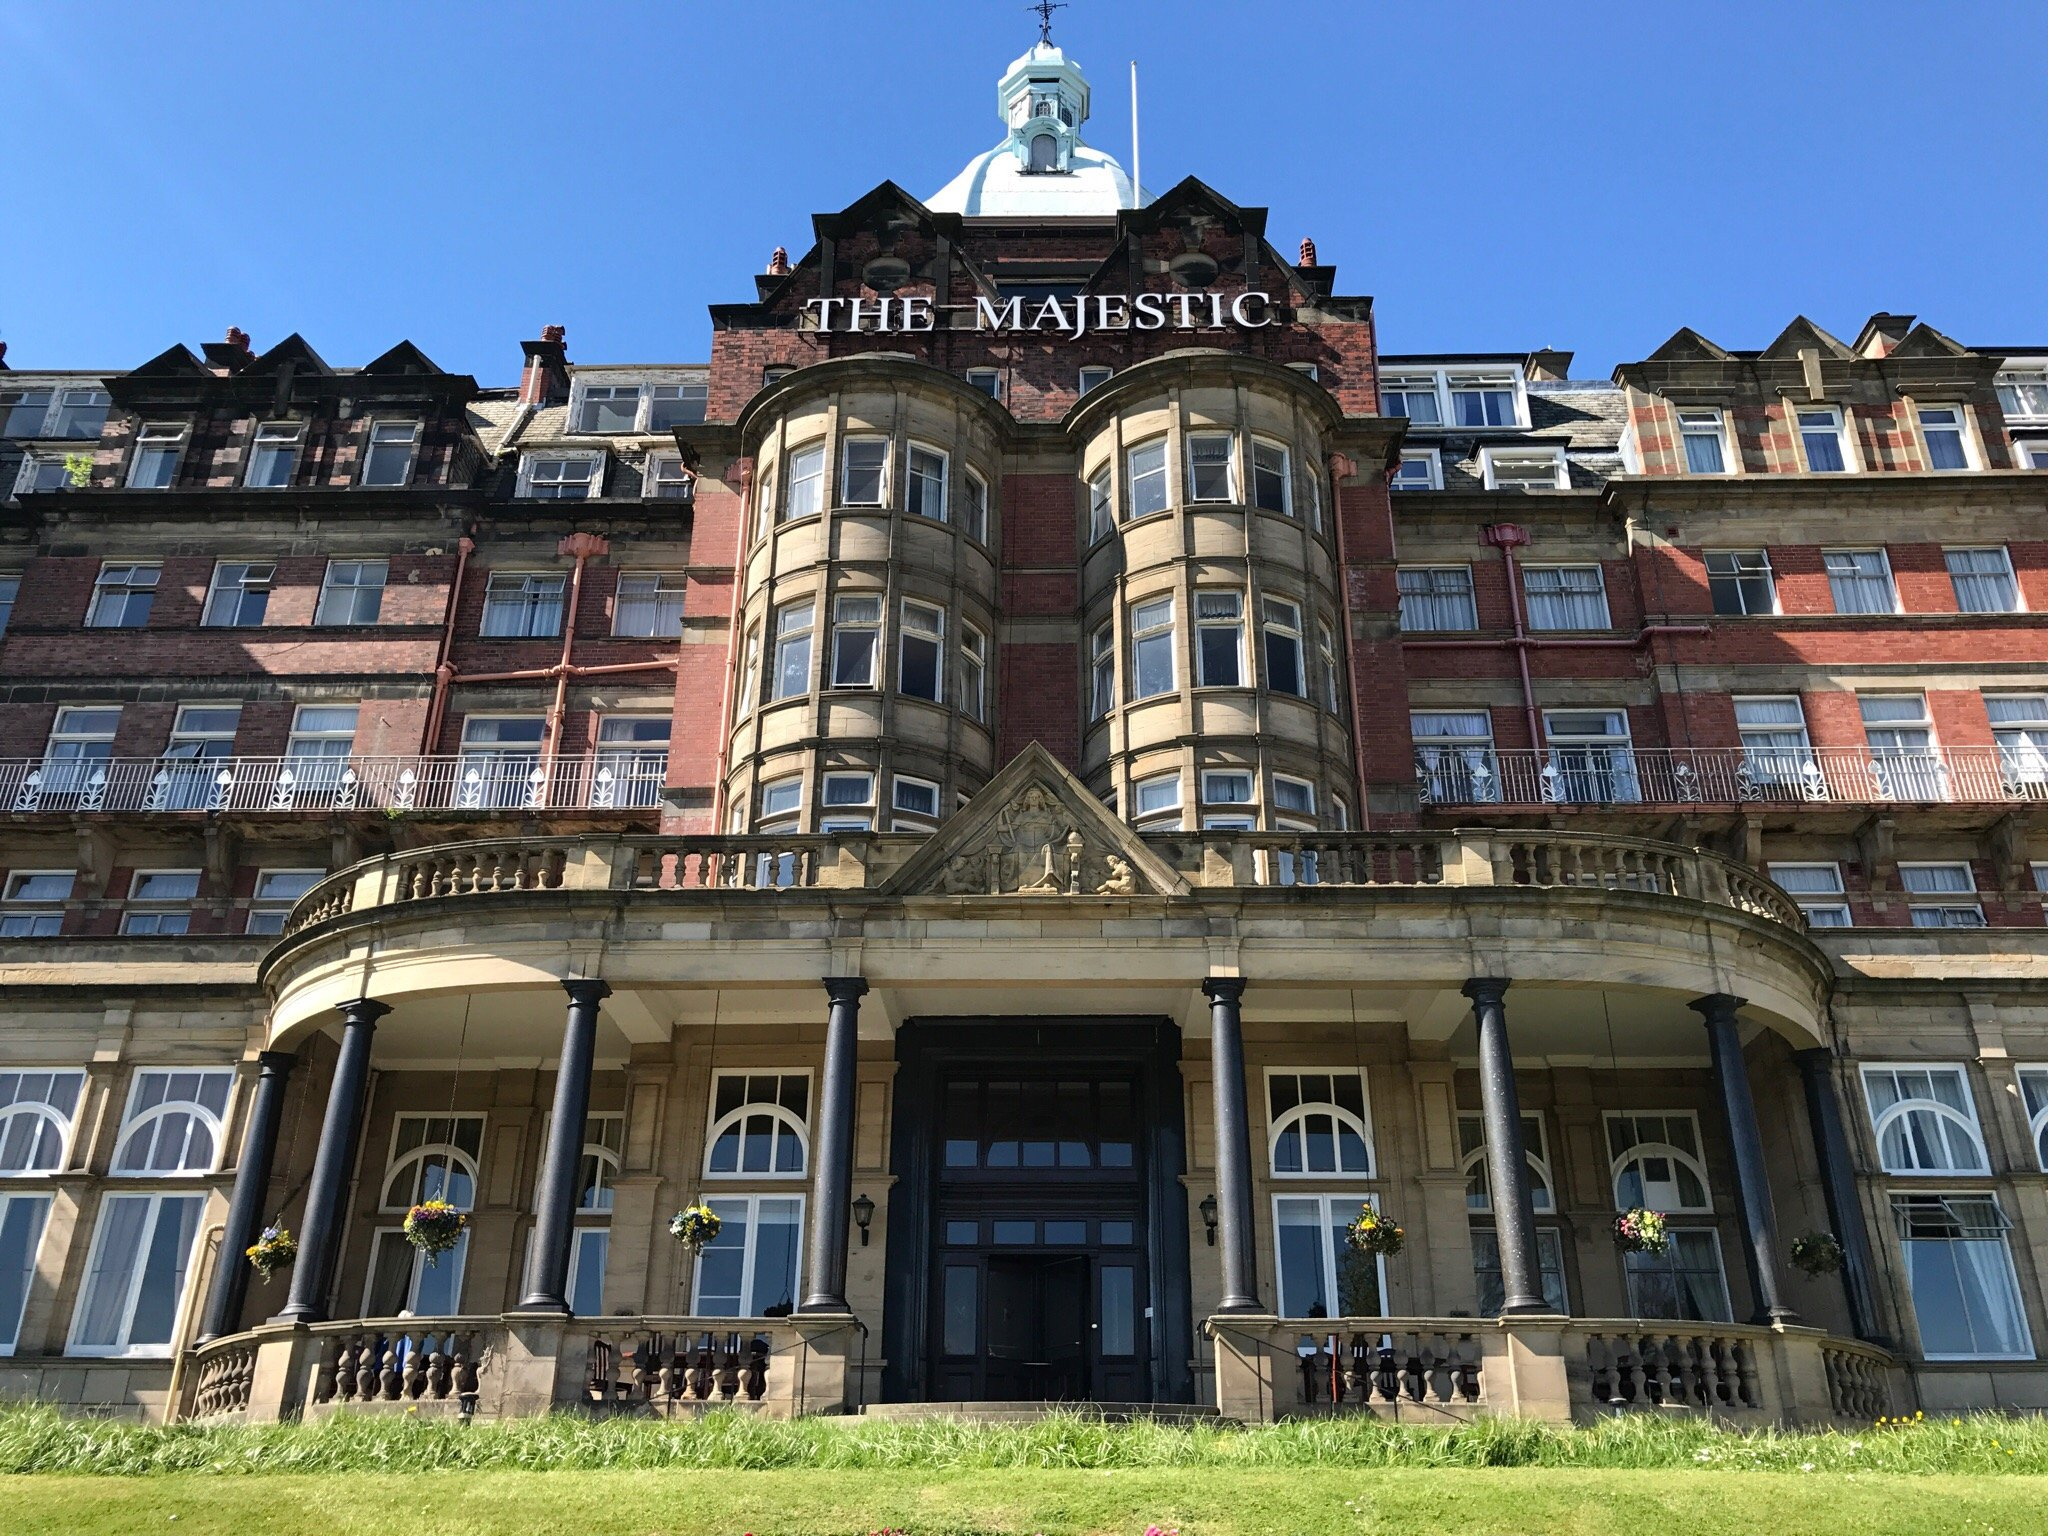 The Majestic Hotel - Part Of The Cairn Collection | Ripon Road, Harrogate HG1 2HU | +44 1423 700300